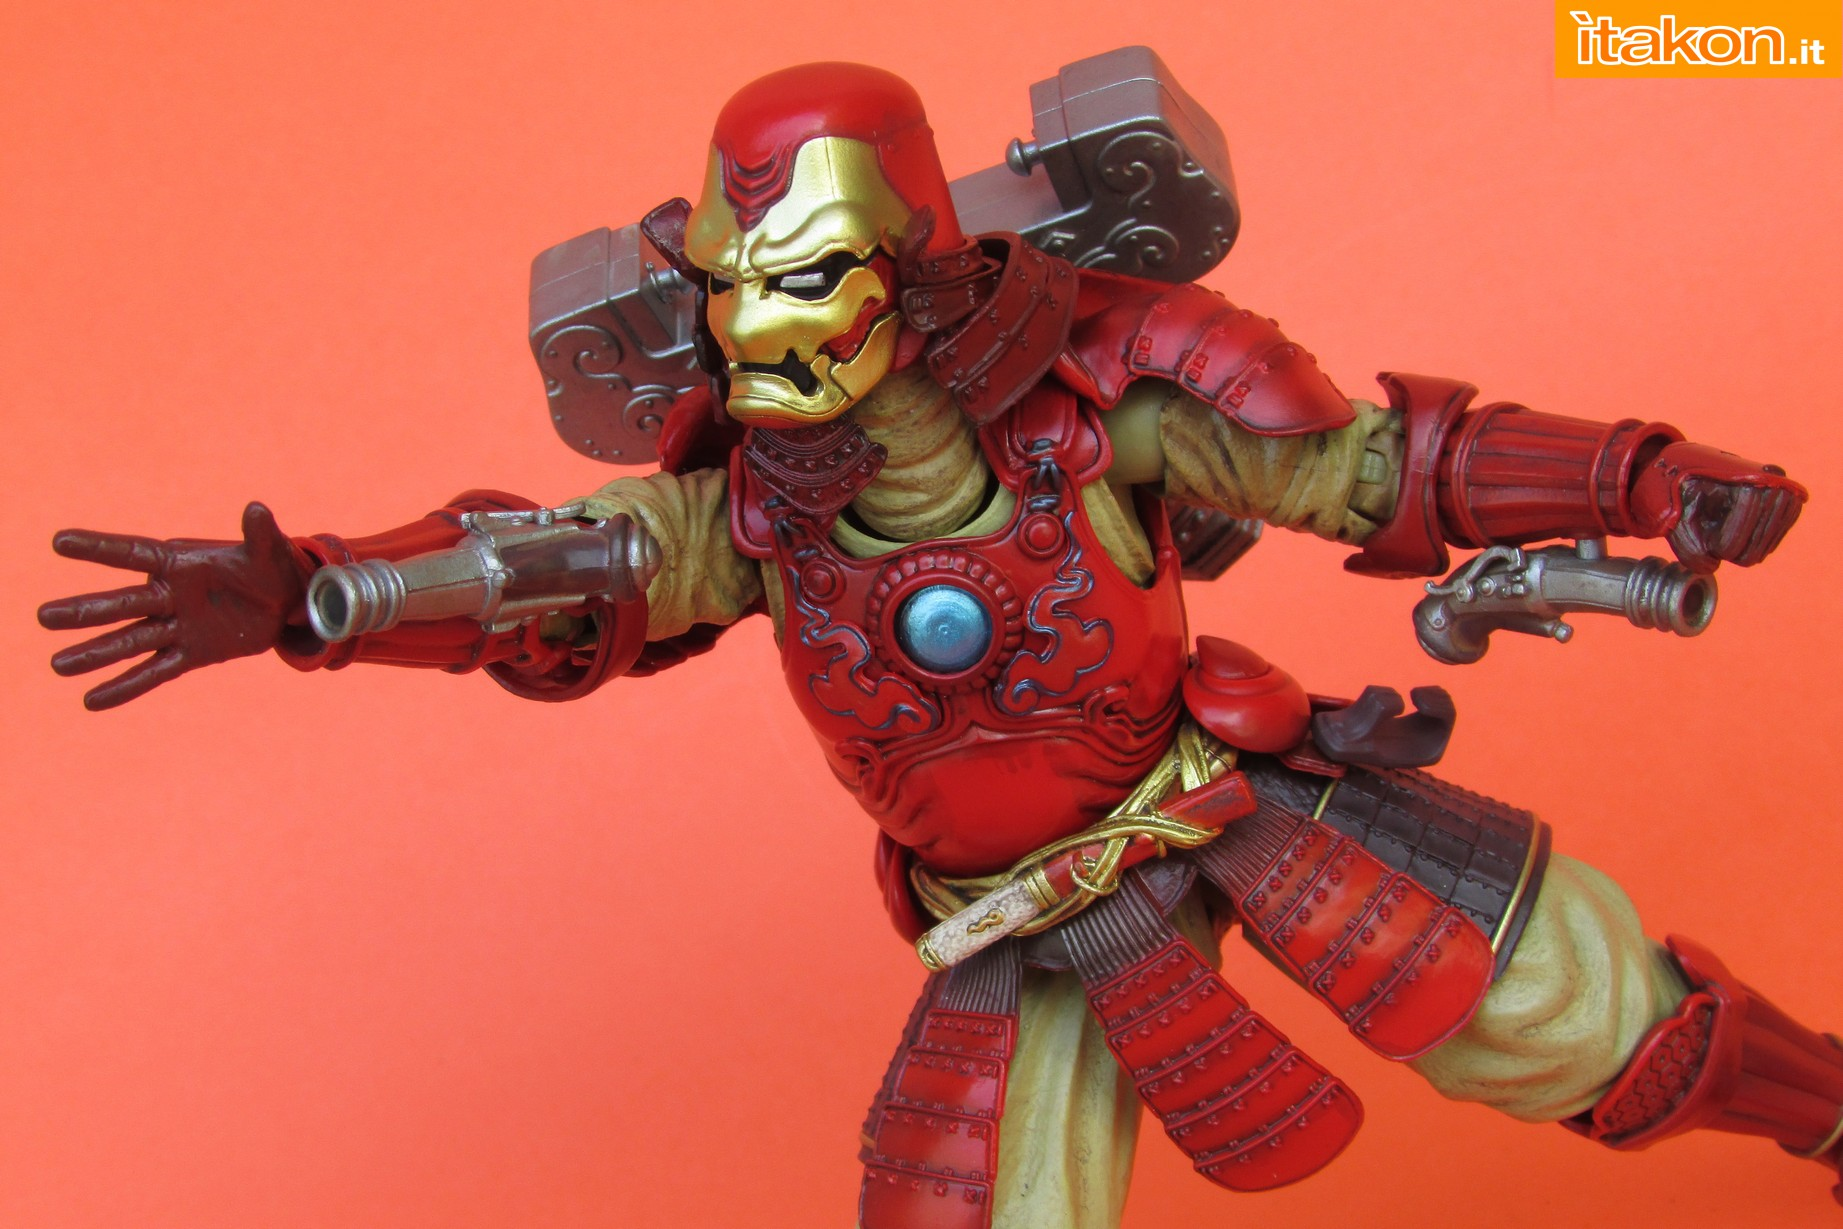 Link a Marvel Comics Koutetsu Samurai Iron Man Mark 3 Meishou MANGA REALIZATION review Bandai Itakon.it36